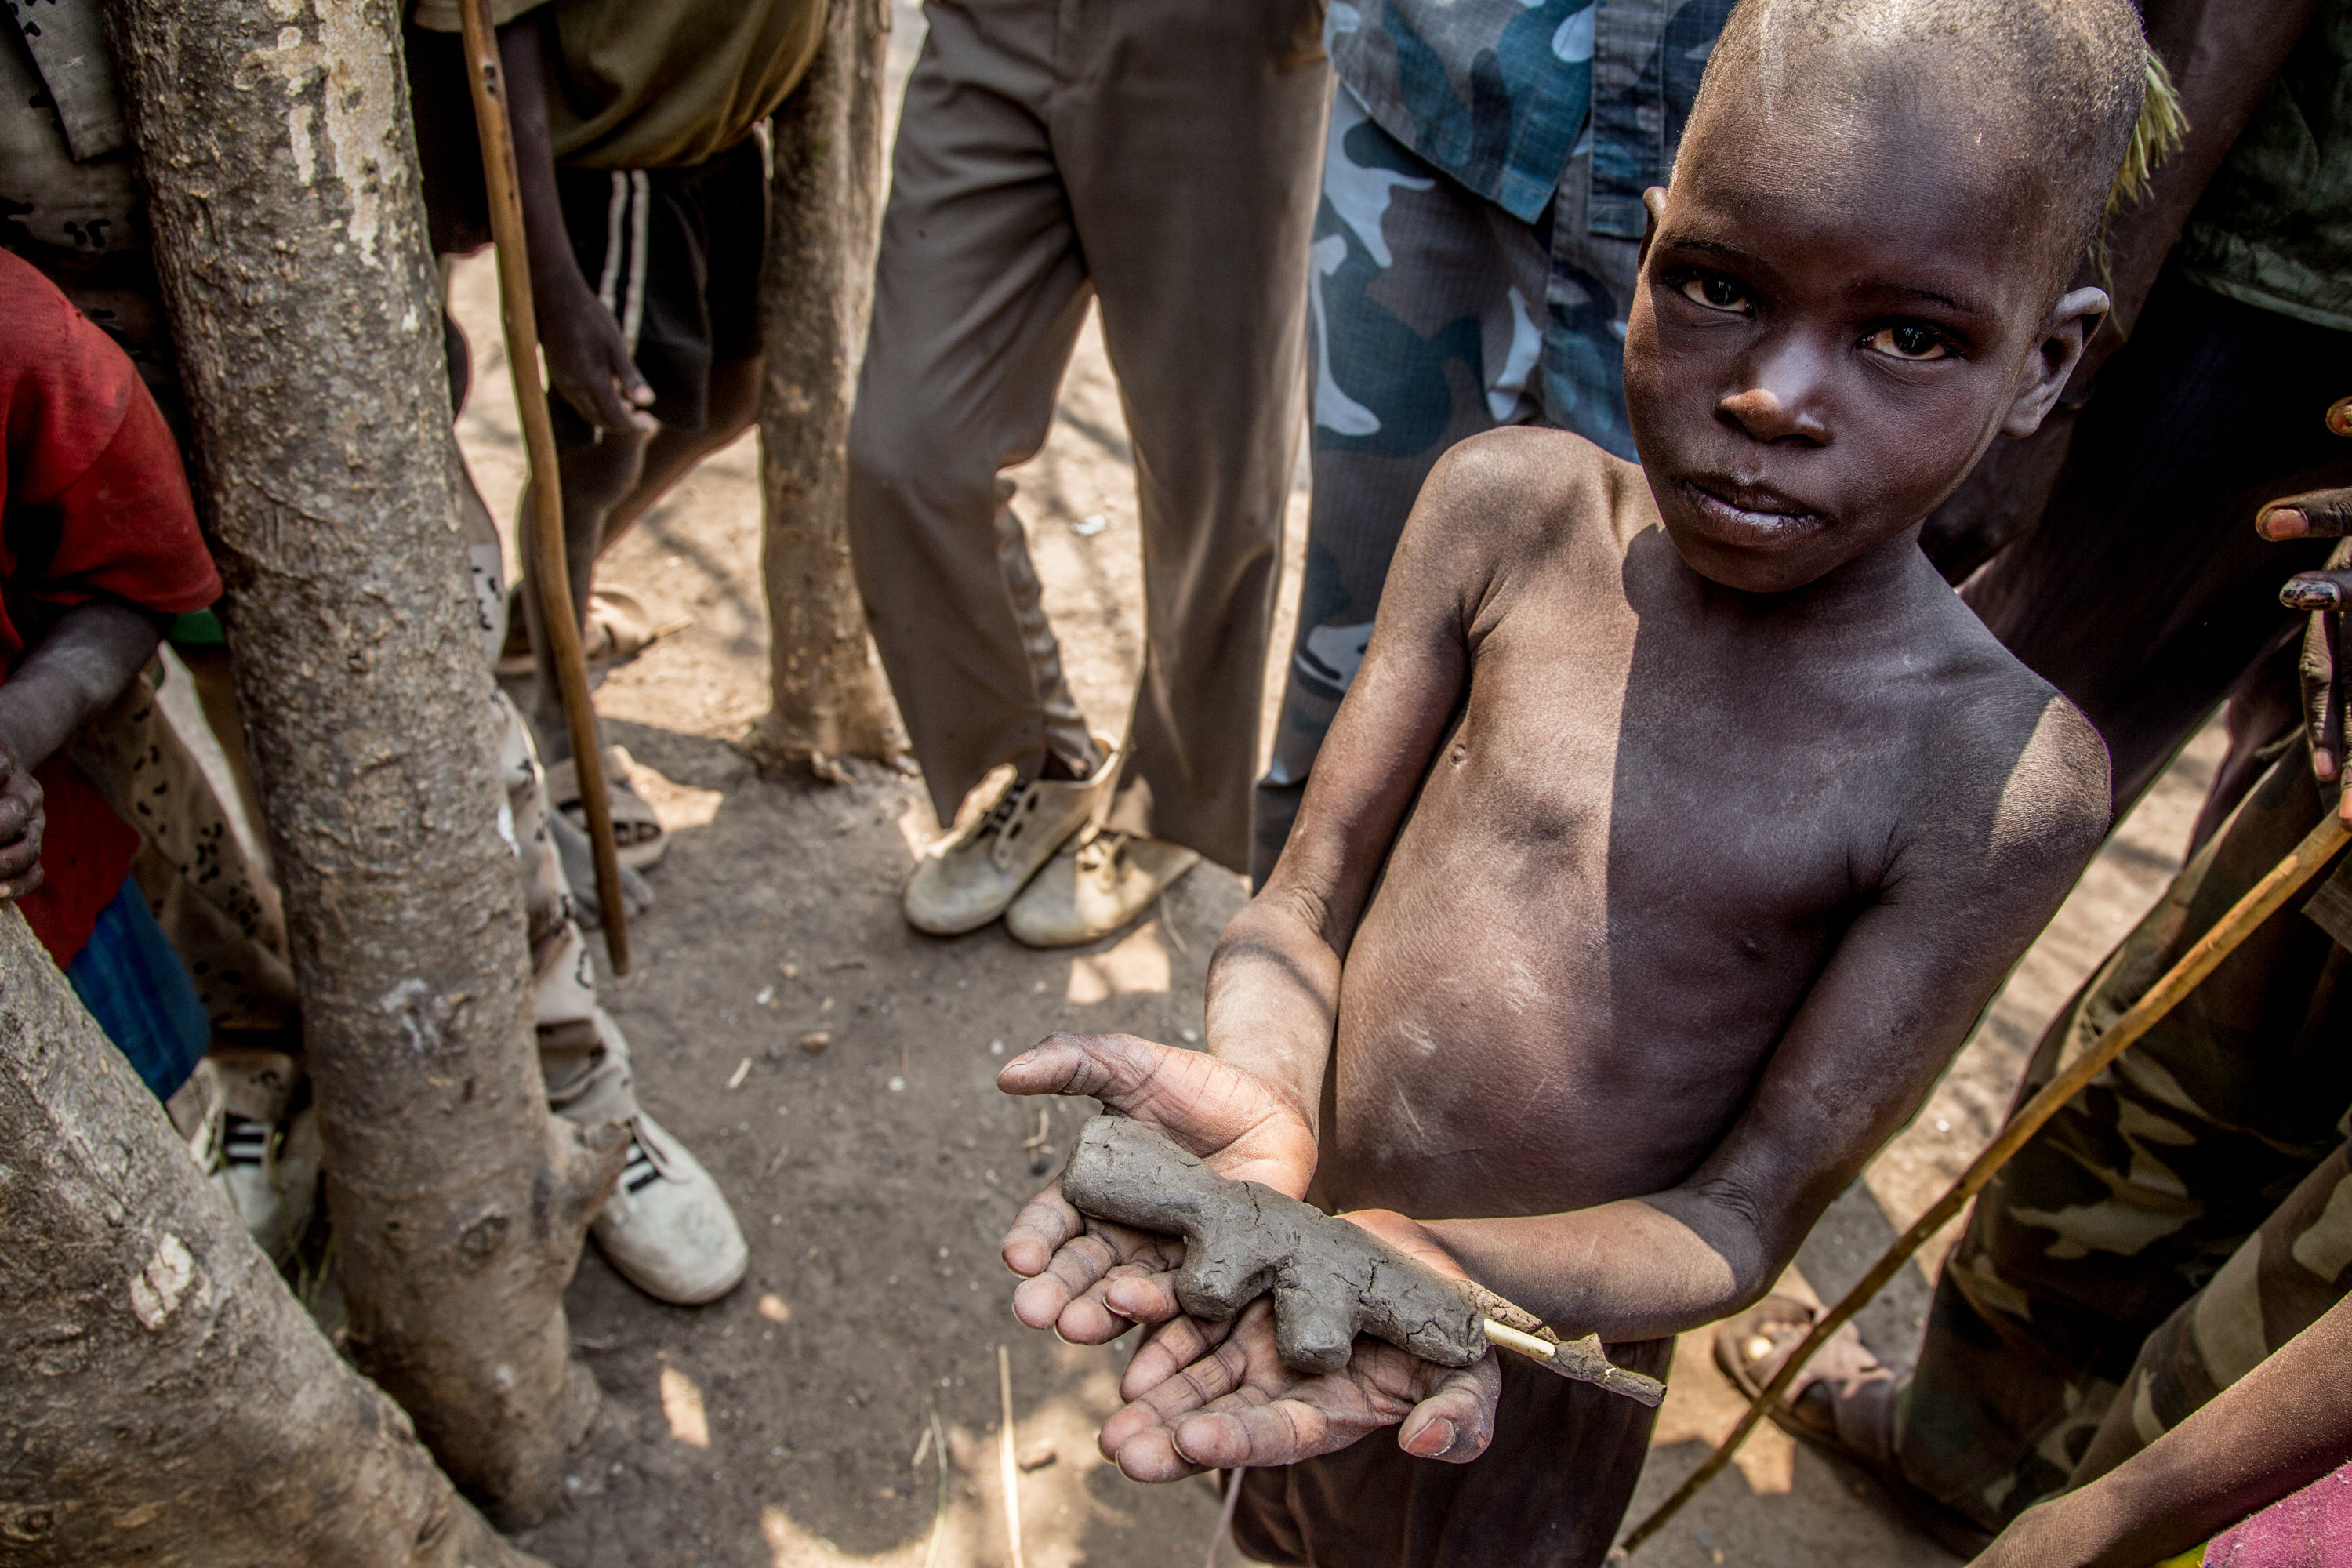 A boy displays a toy assault rifle made of mud and sticks at Dr. Riek Machar\'s secret base camp near Akobo, S Sudan.